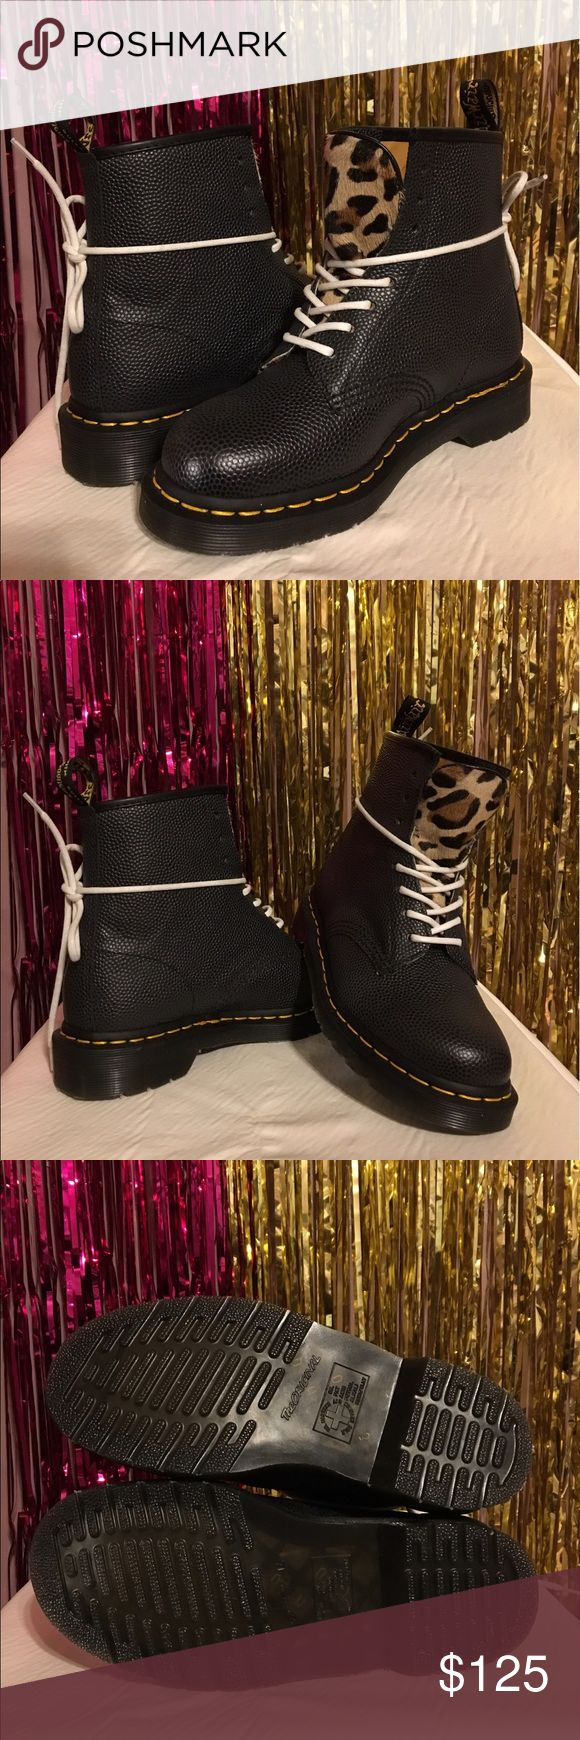 STUSSY x DR MARTENS 1460 THIS EXCLUSIVE BOOT FEATURES AN 8-EYE LACE-UP FASTENING, CHEETAH-PRINT FAUX PONY SKIN TONGUE, TWO PAIRS OF LACES (BLACK AND WHITE) AND IS FINISHED IN A PREMIUM PEBBLE-TEXTURED BLACK LEATHER AND DUAL BRANDED SOCKLINER. OF COURSE ALL THE ICONIC 1460 DETAILS ARE THERE TOO INCLUDING THE CLASSIC DR. MARTENS HEEL LOOP, YELLOW WELT STITCHING AND BOUNCING AIRWAIR SOLE. Stussy Shoes Lace Up Boots